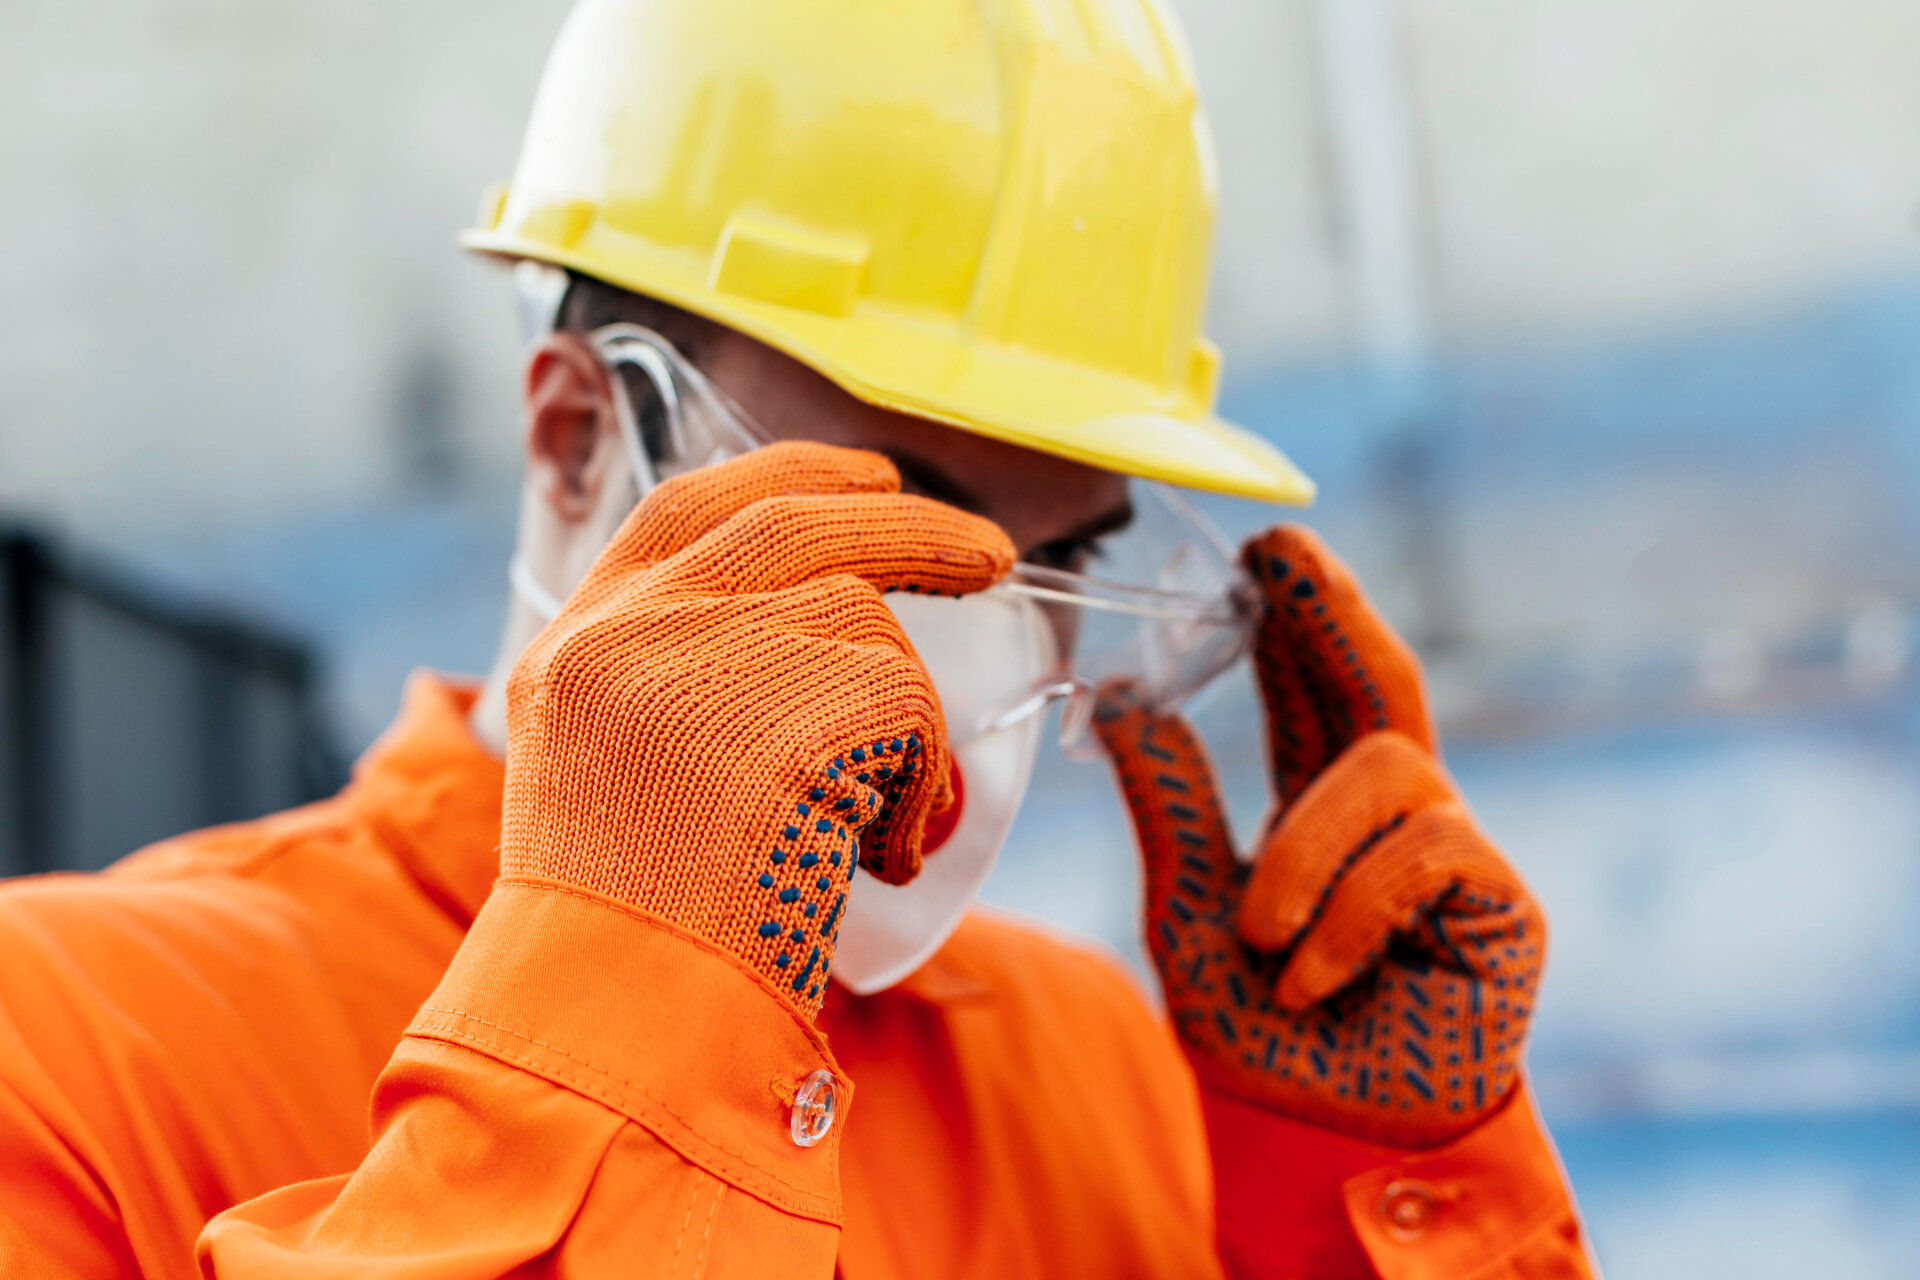 worker-uniform-with-hard-hat-protective-glasses